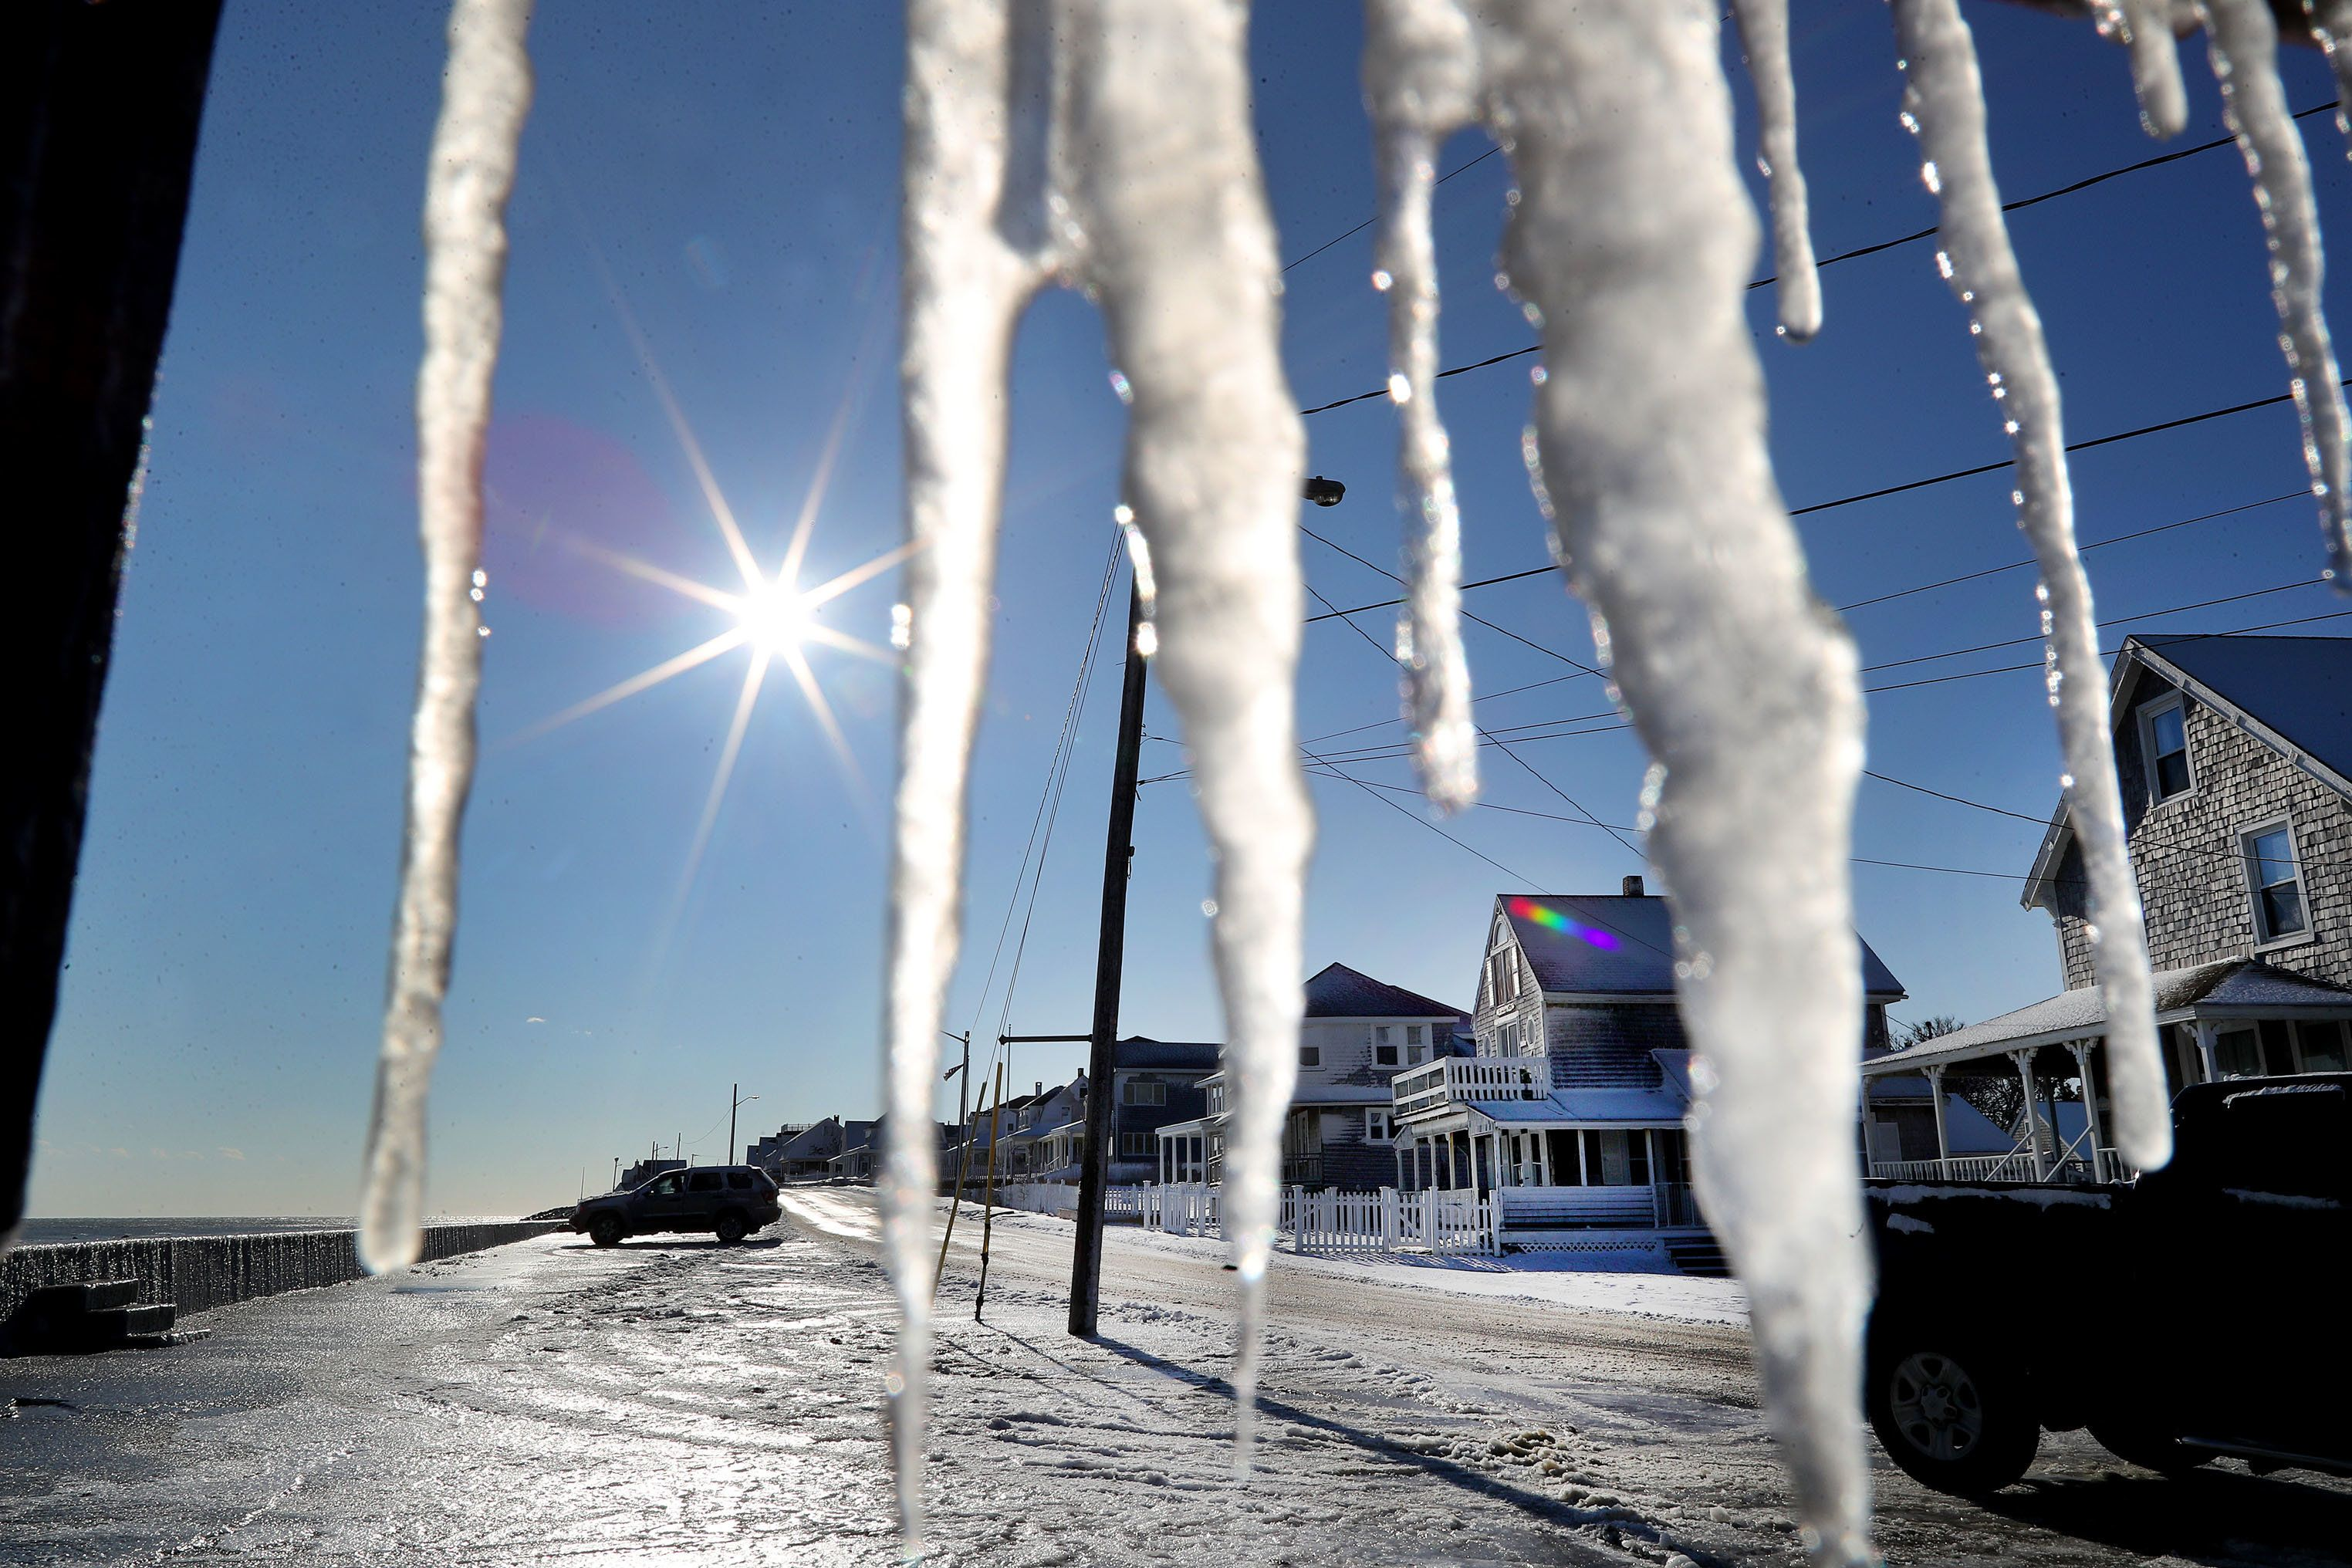 Icicles hang from a porch in Marshfield, Massachusetts on January 5, 2018.